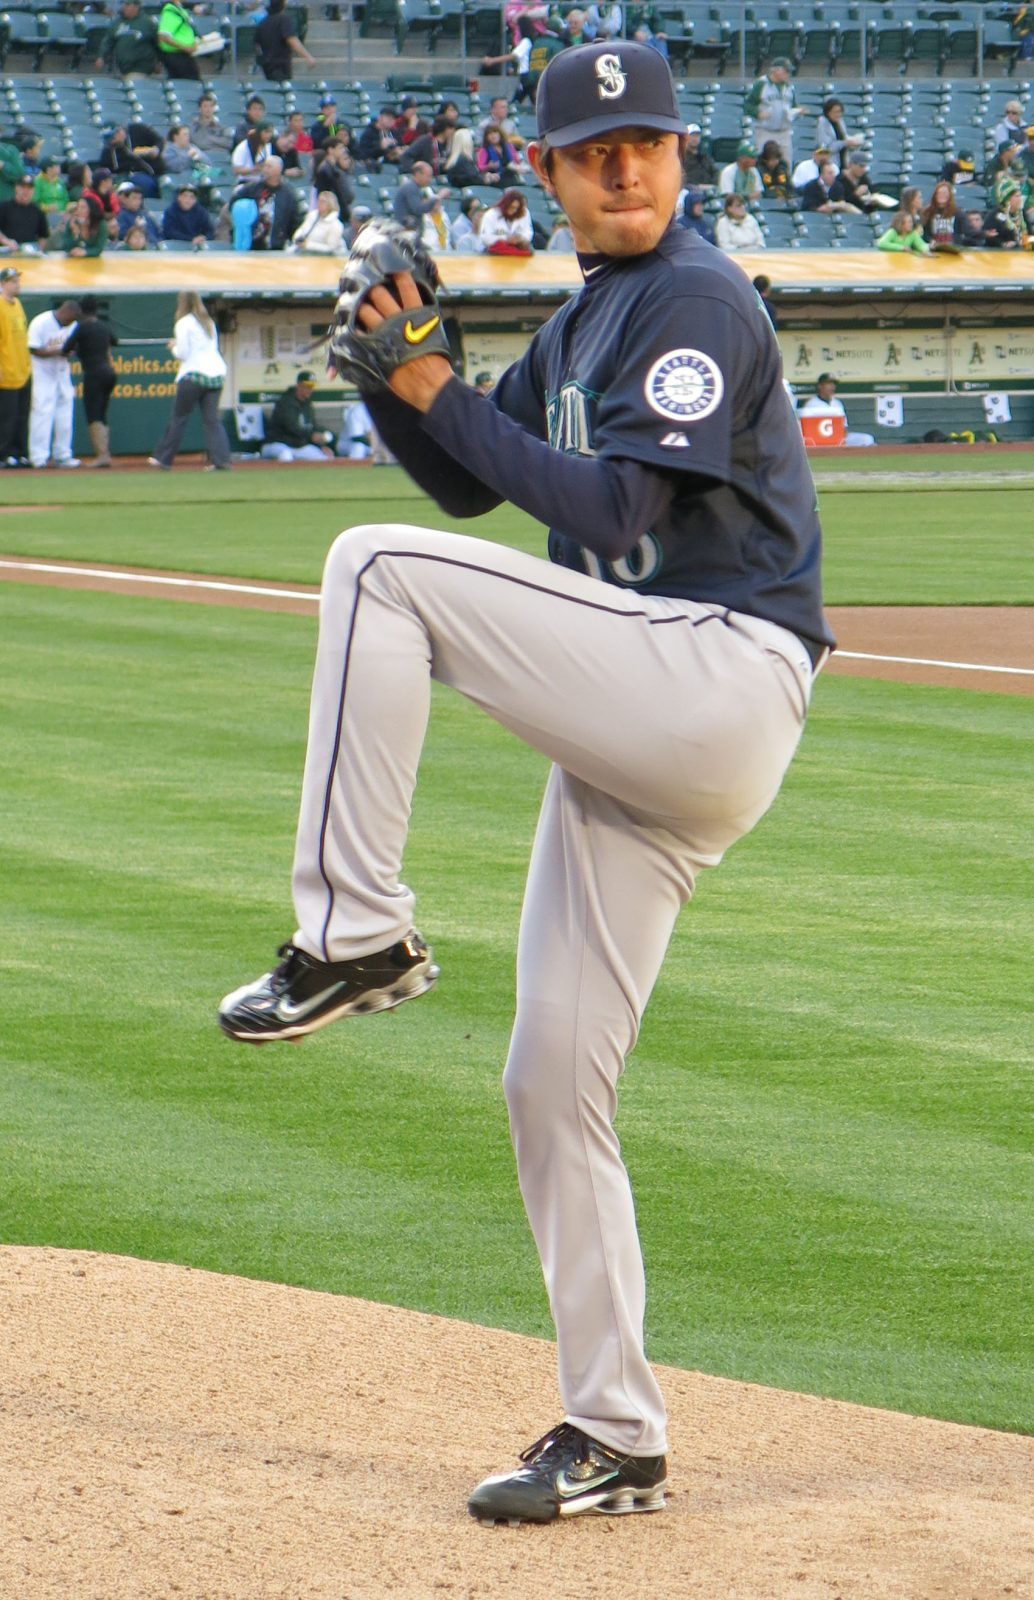 Hisashi Iwakuma. Photo by LiAnna Davis / Wikimedia Commons.